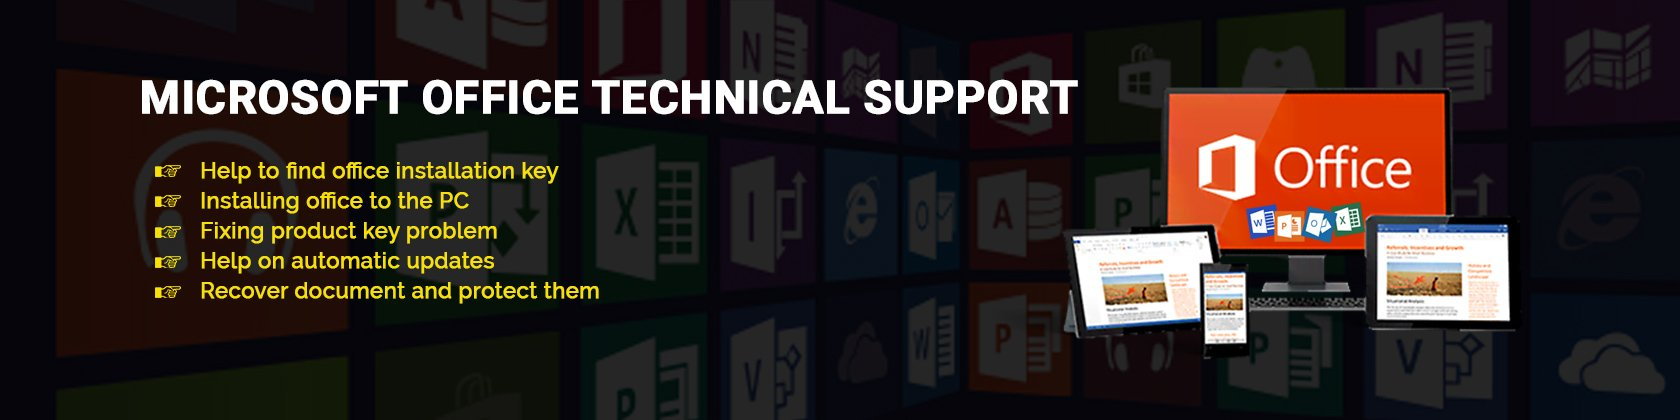 MS Office Technical Support